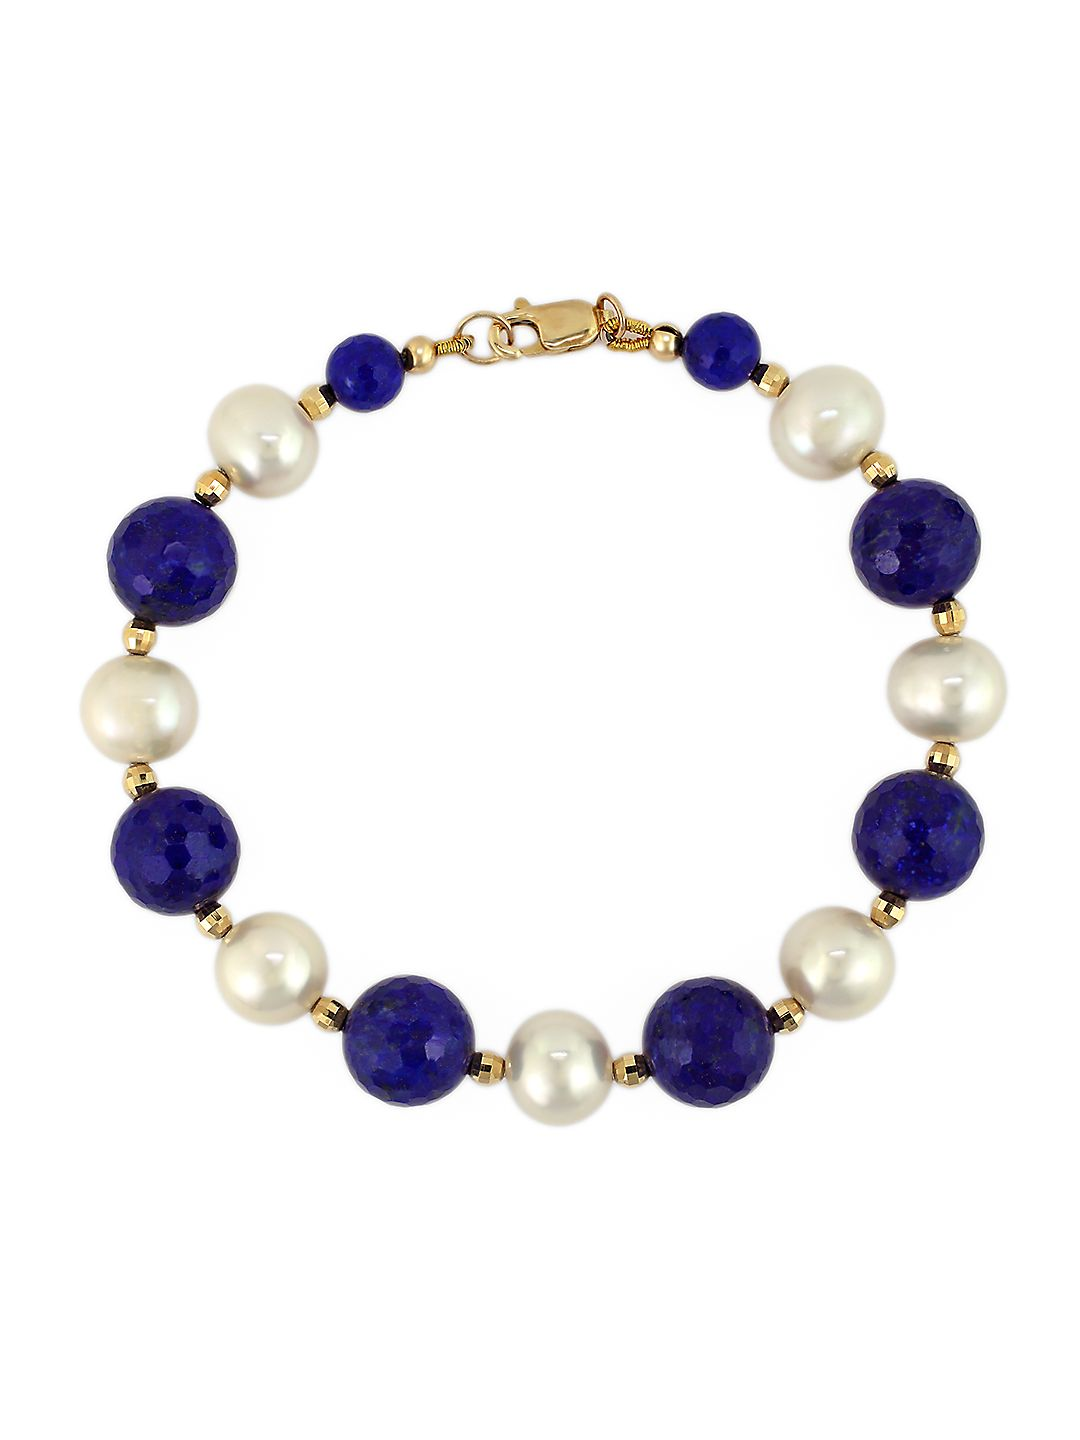 White Pearl, Lapis and 14K Yellow Gold Bracelet